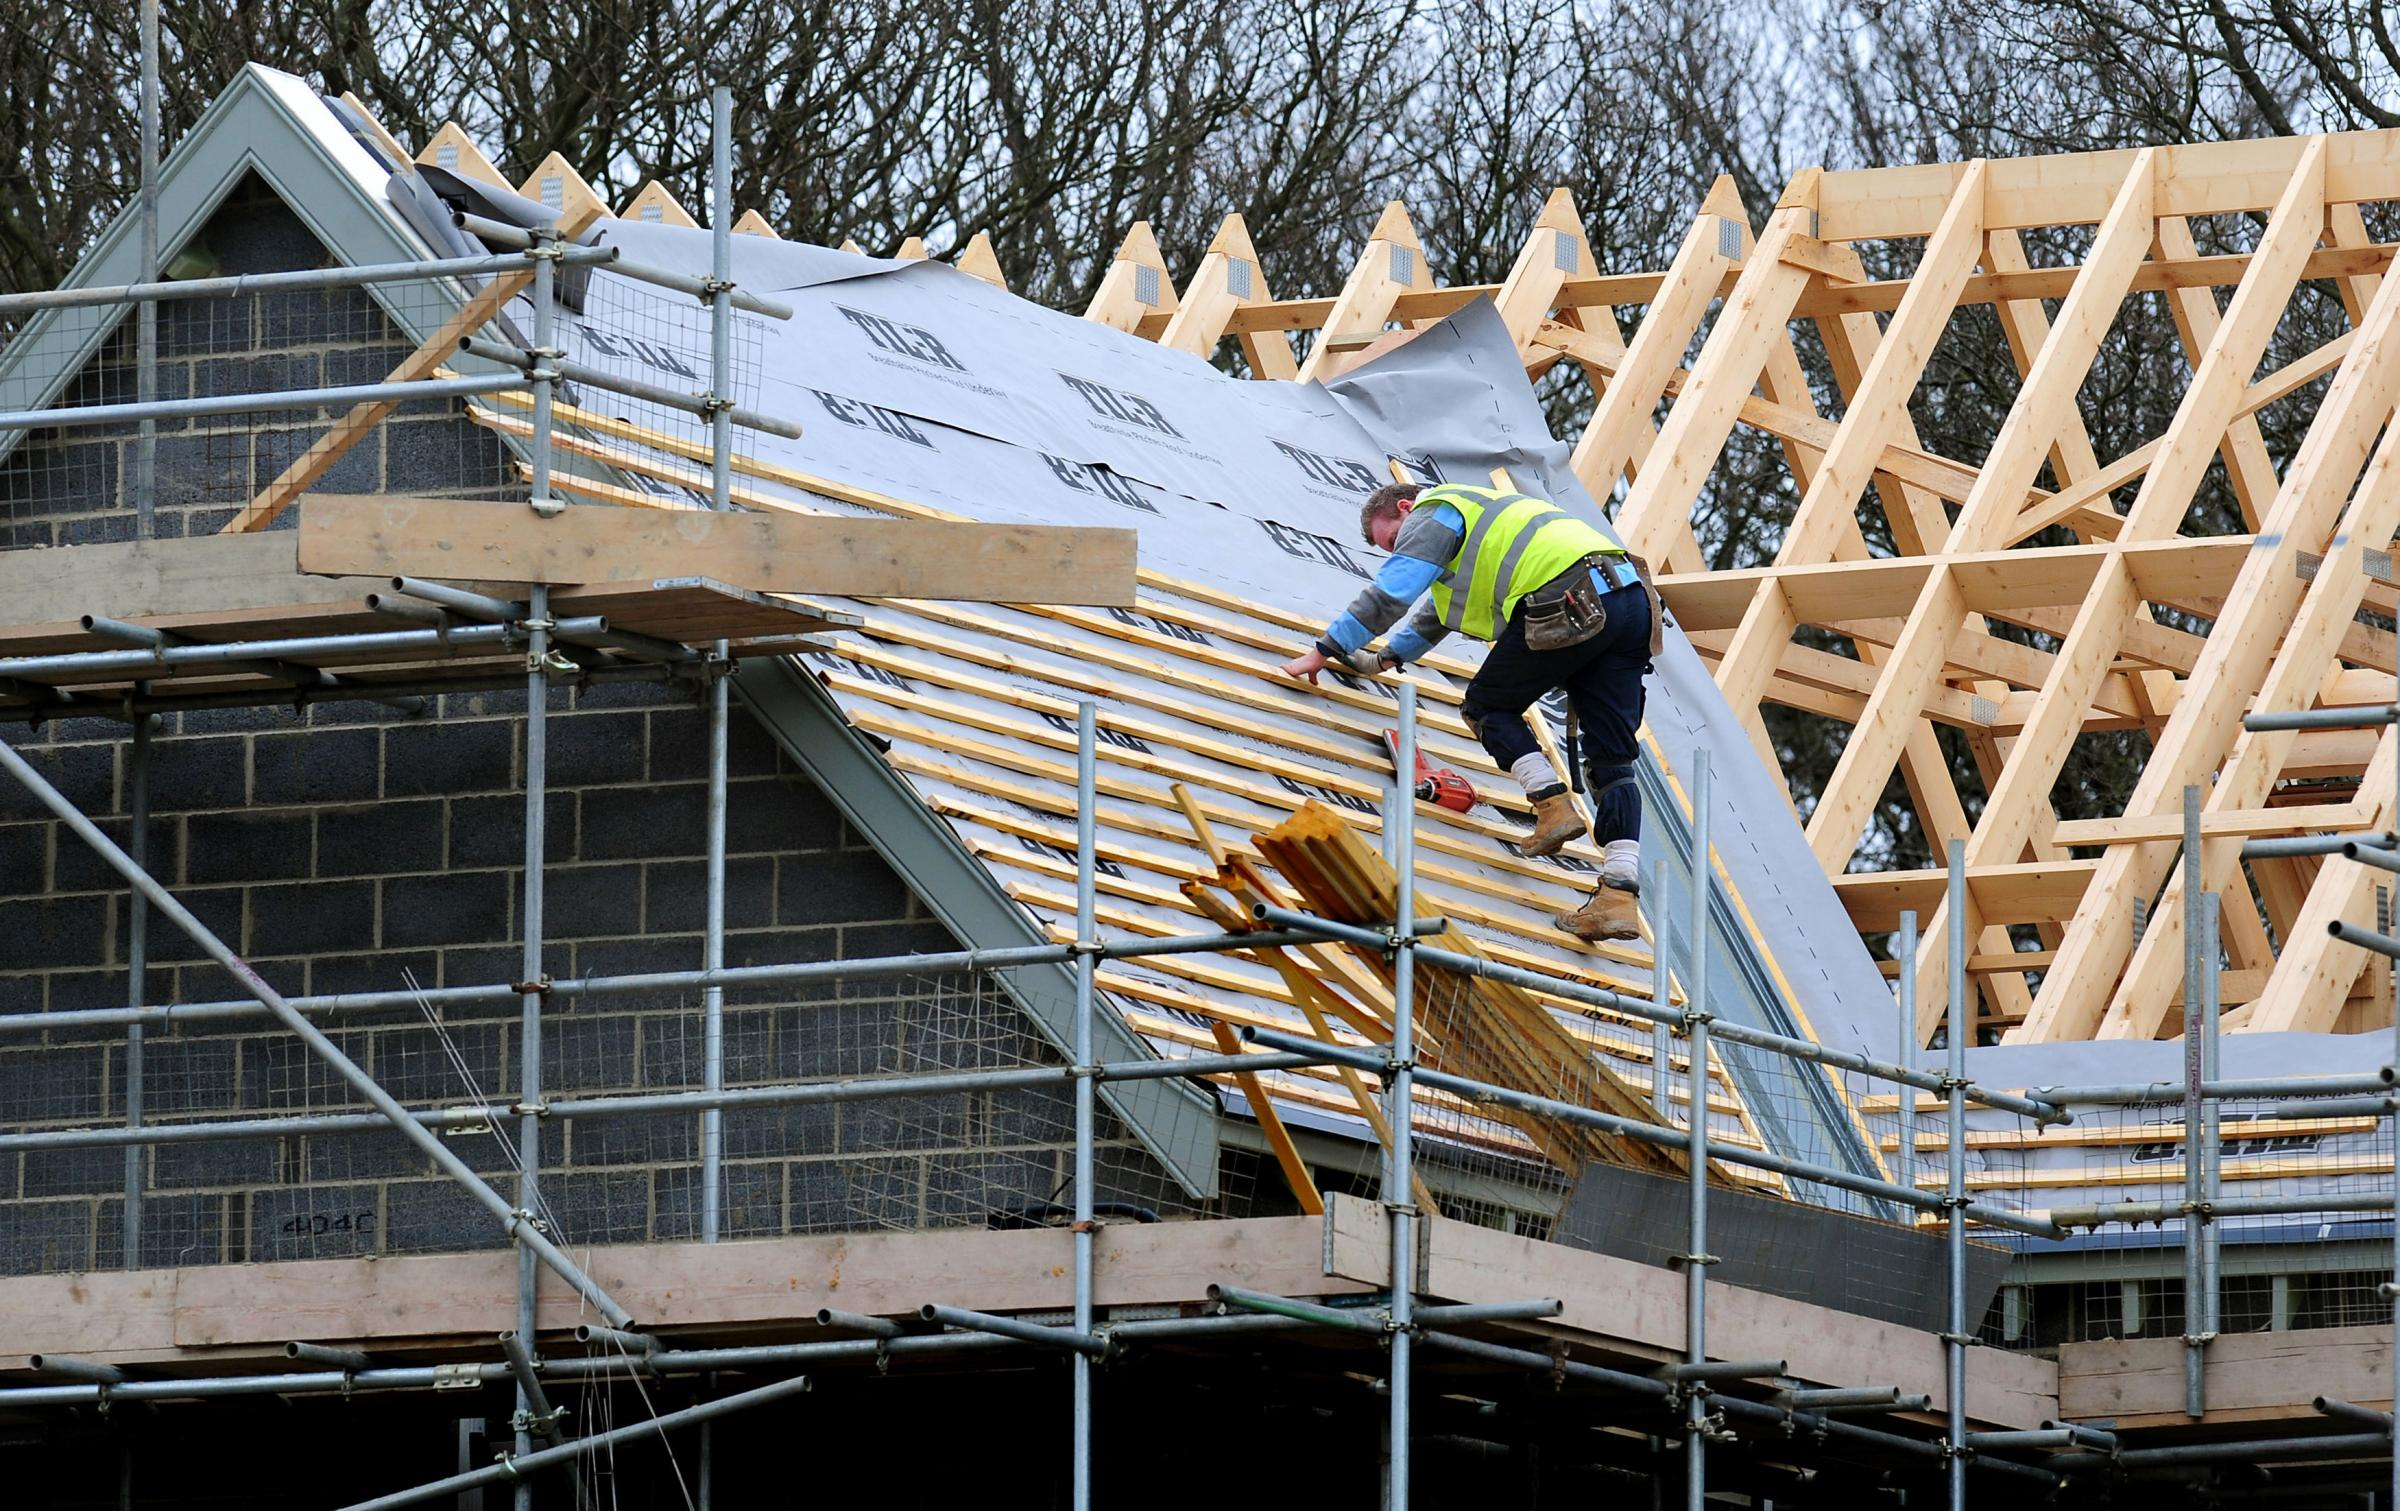 Council's £30m bid to build 300 homes and edge out developers